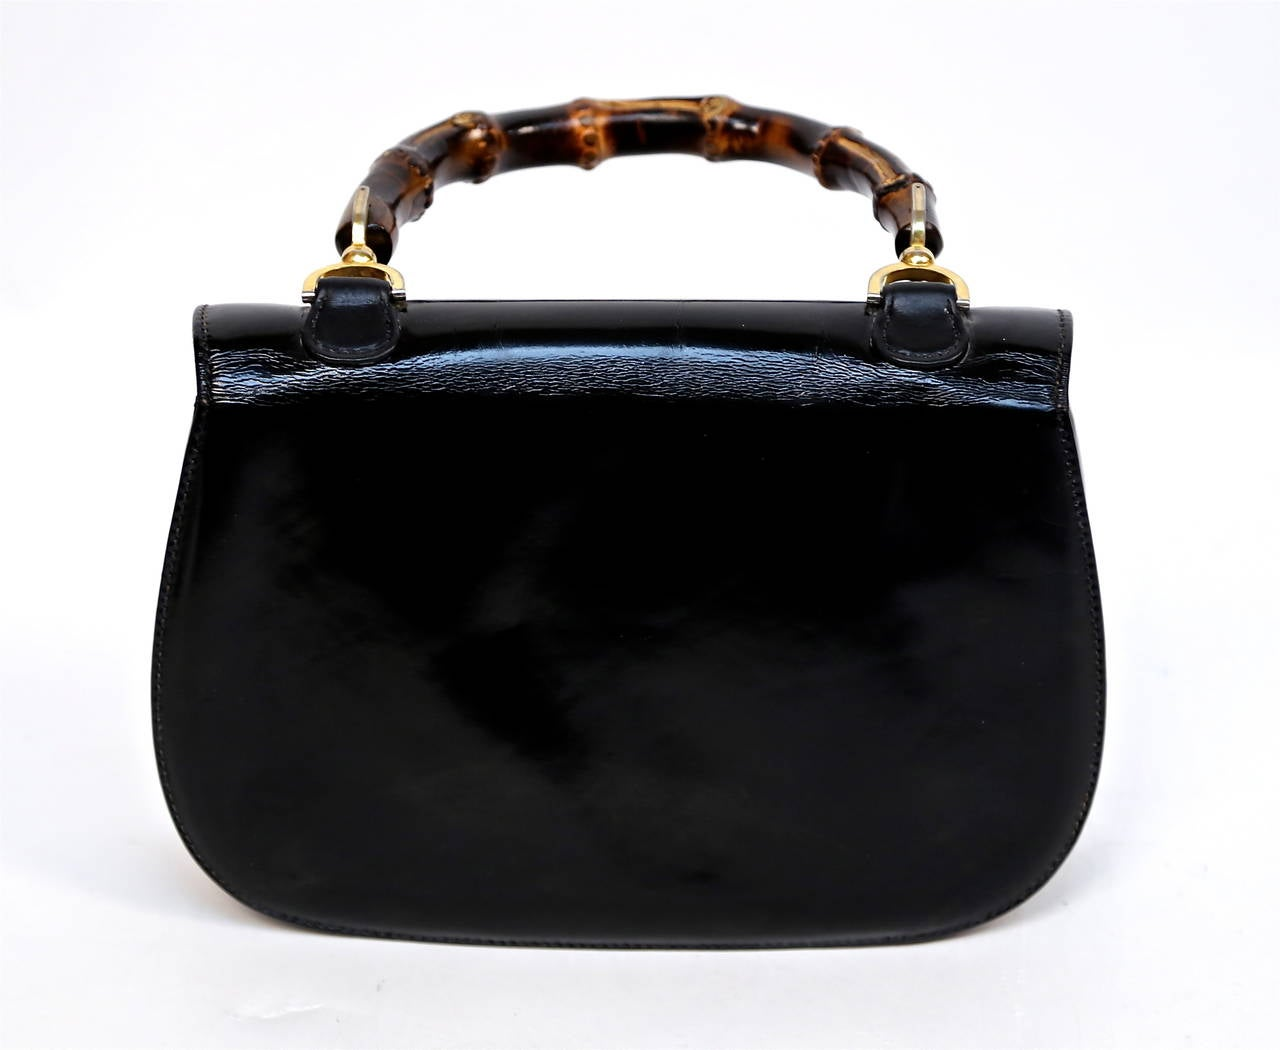 """Jet black patent leather bag with brown bamboo and brass handle designed by Gucci dating to 1975. Bag measures approximately 10.5"""" wide by 7"""" tall by 3"""" deep. Handle has a 4.5"""" drop. Bag had one large compartment and one slot packet. Made in Italy."""